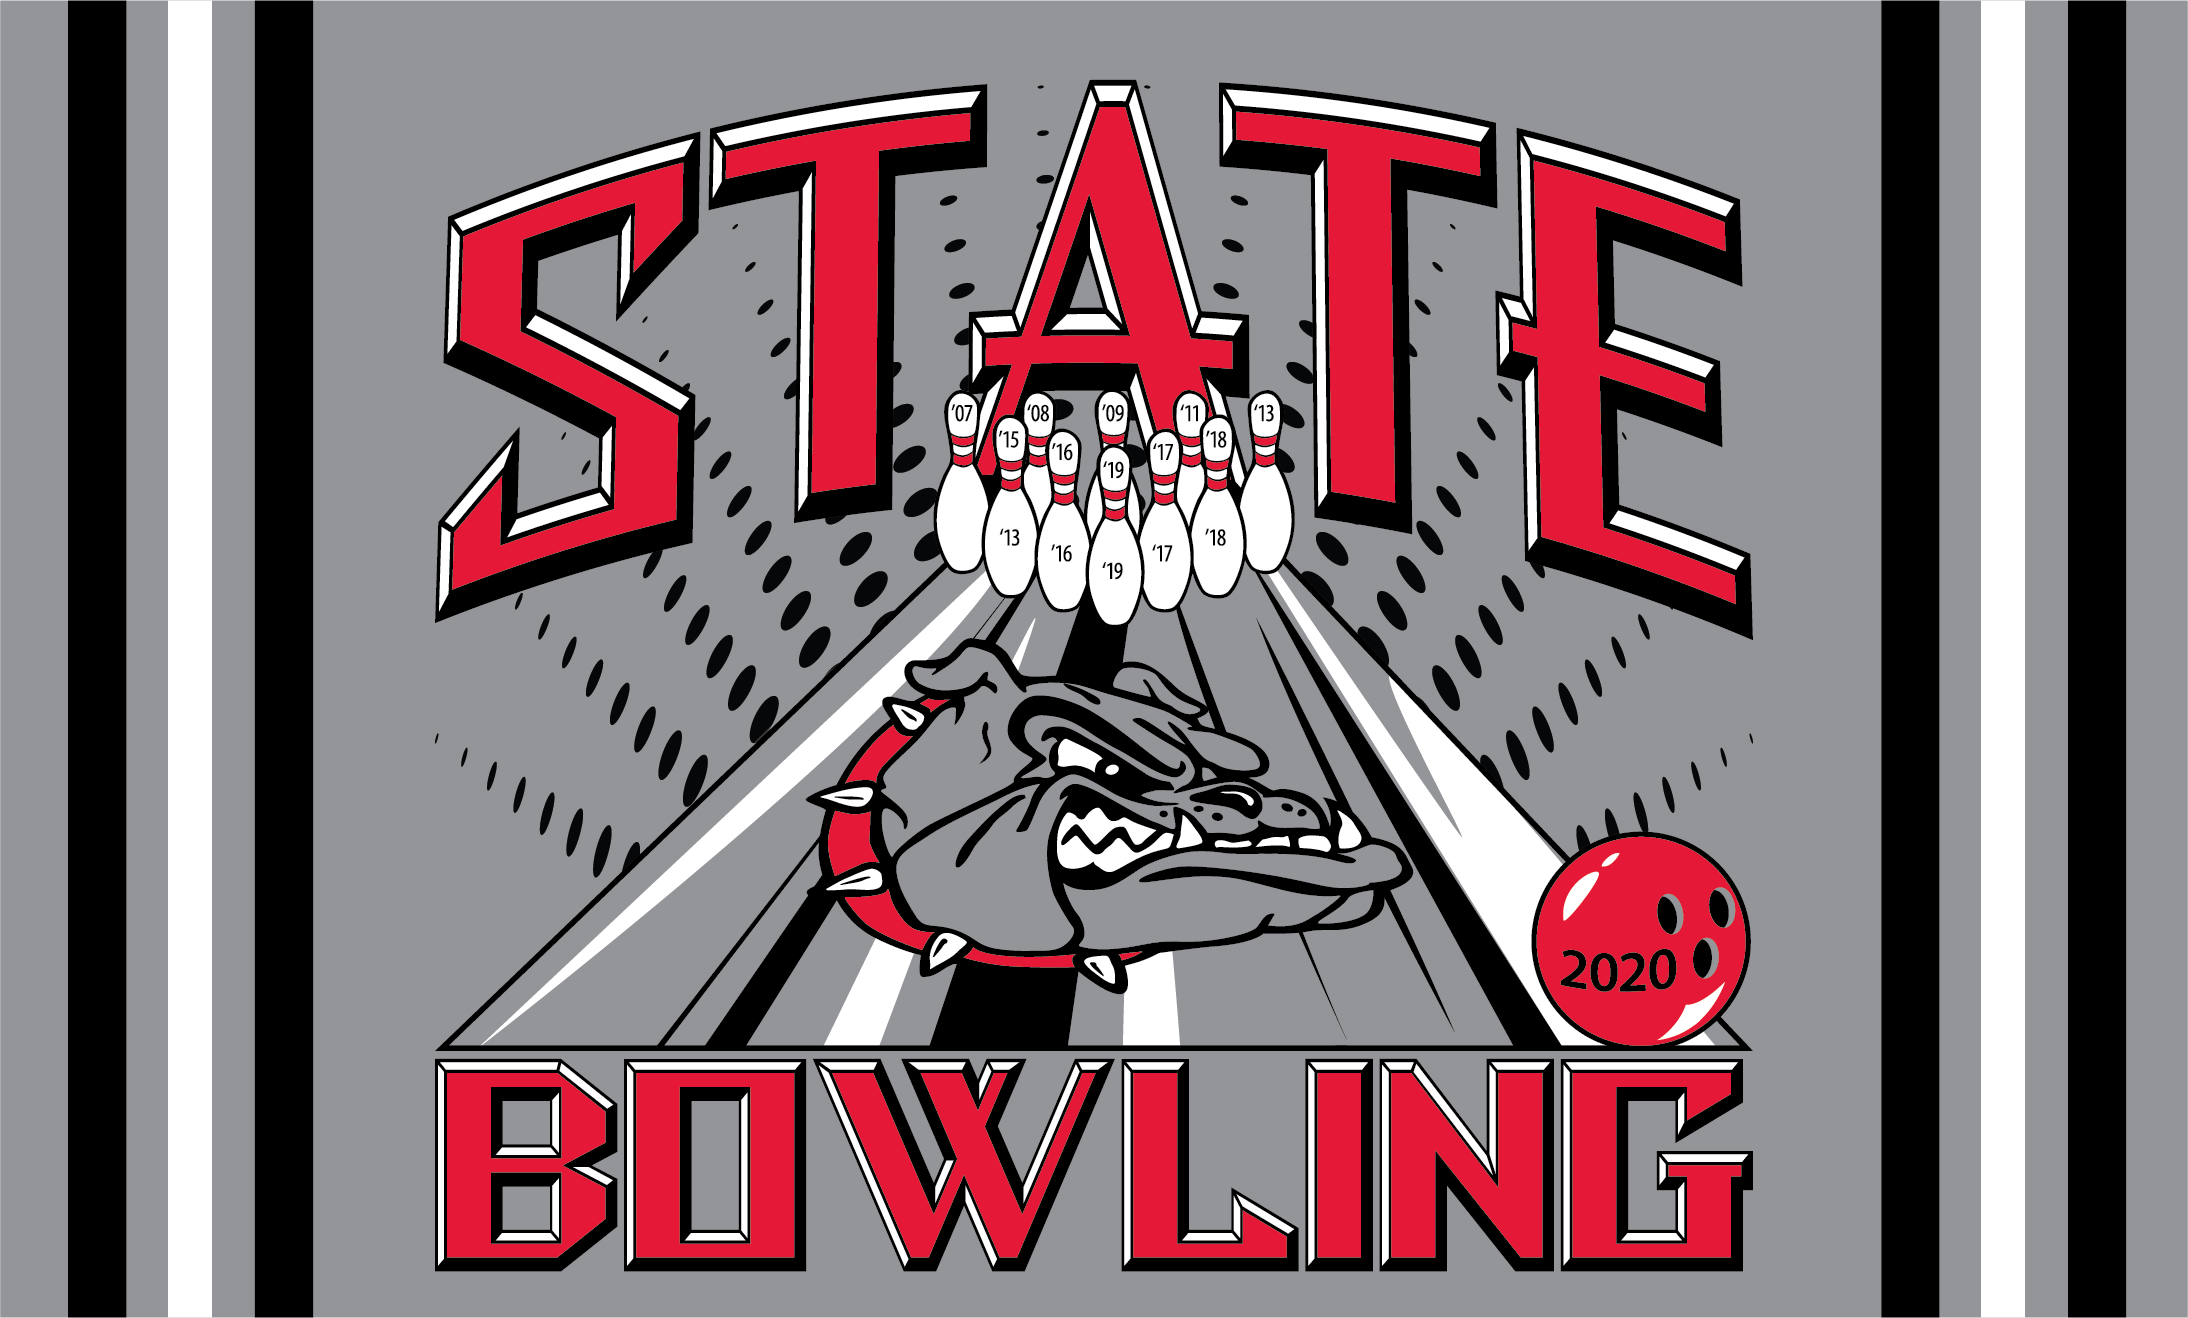 Le Mars State Bowling